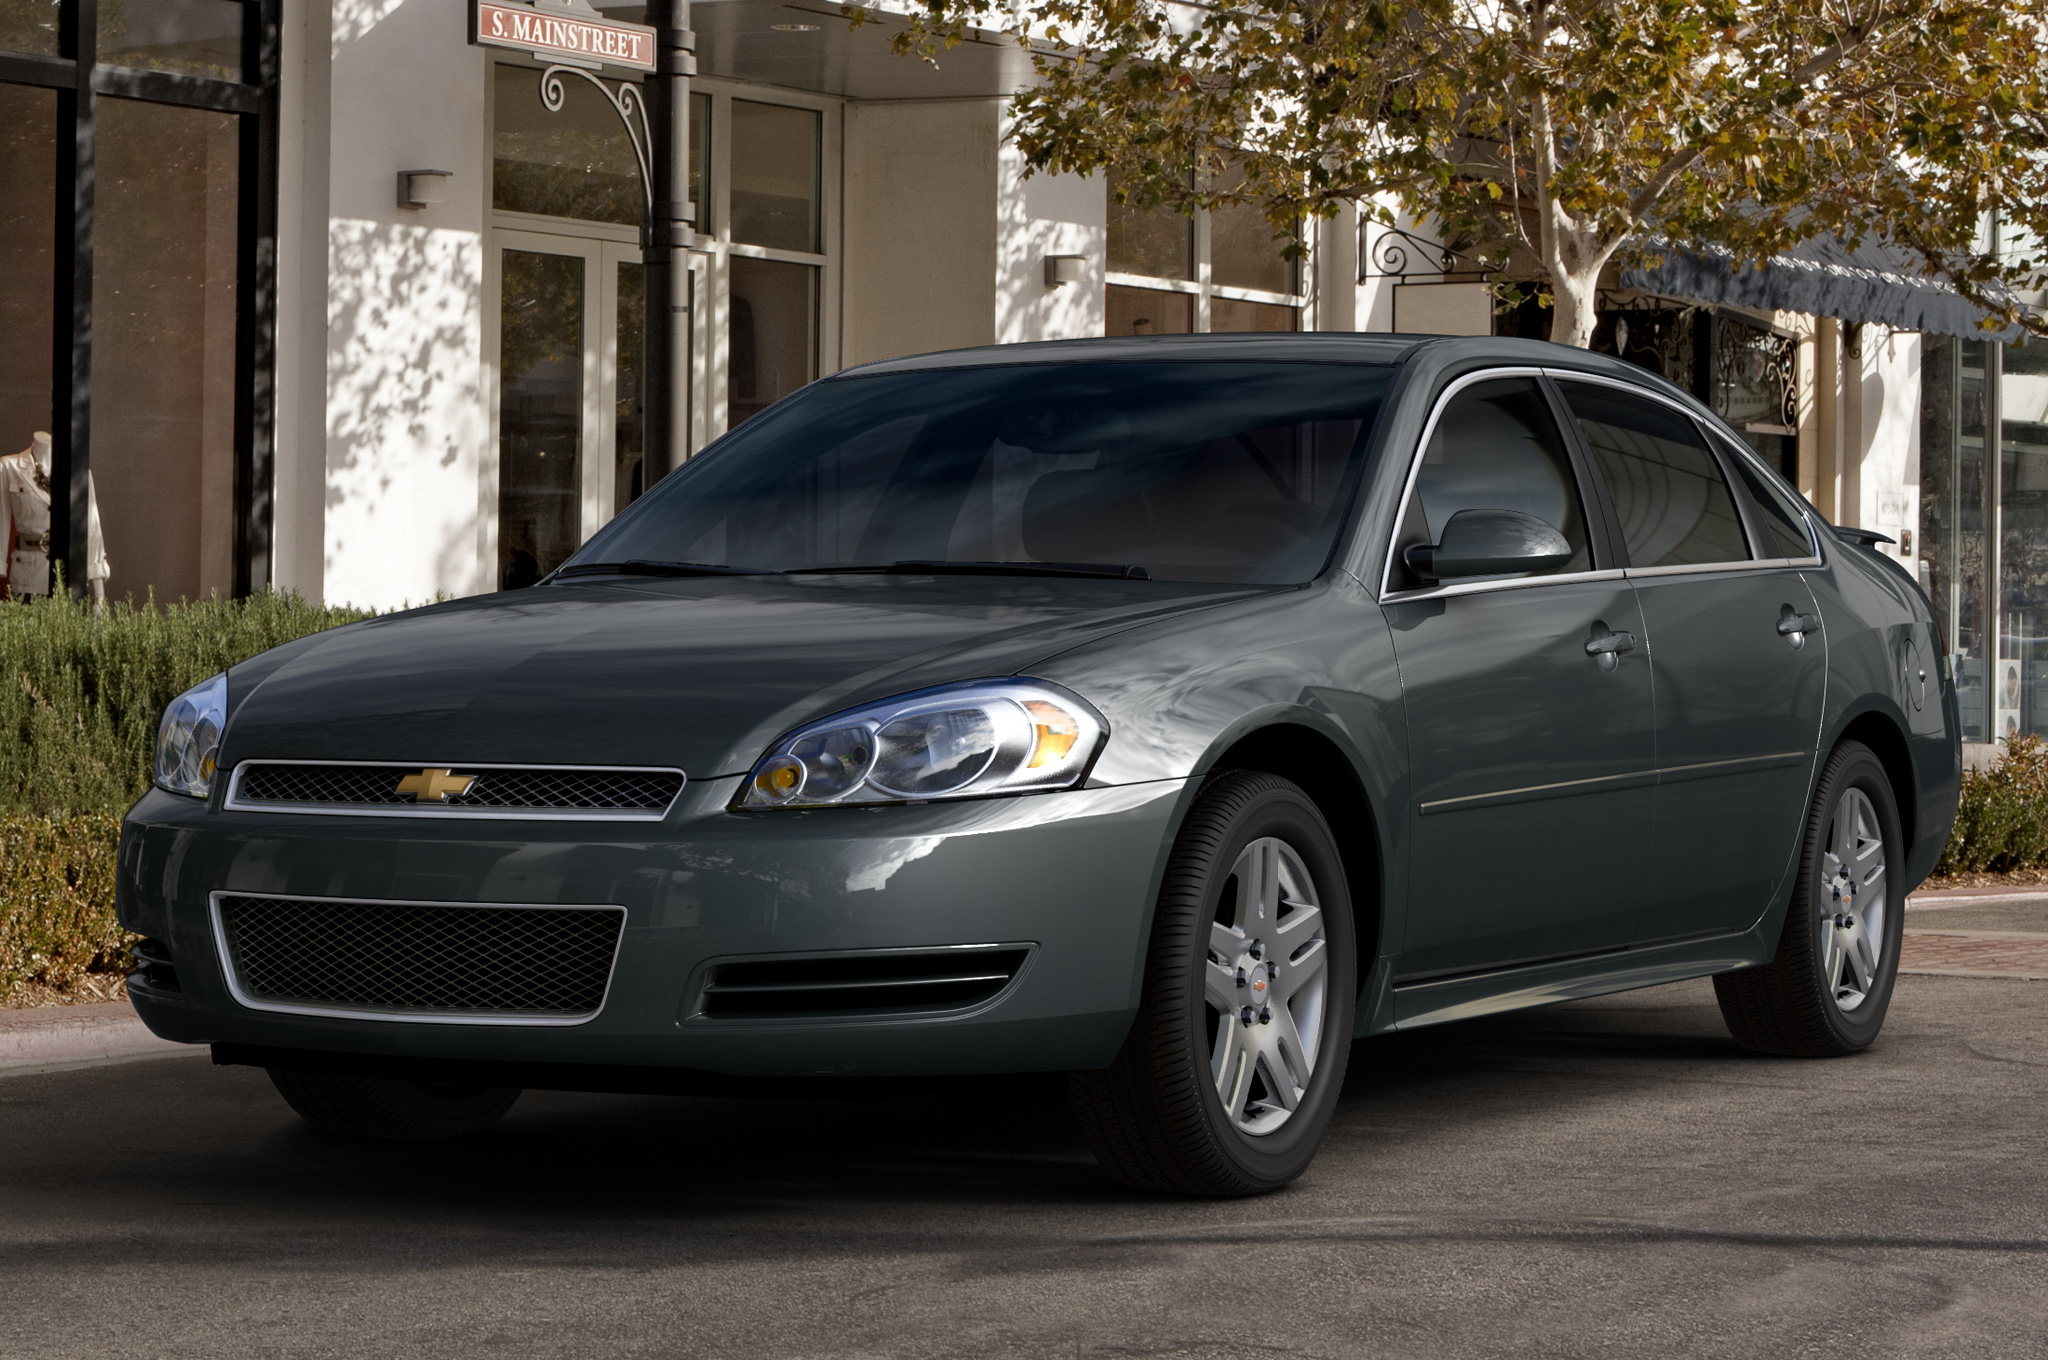 Chevrolet Impala Limited Production Extended To 2016 For Fleet Use